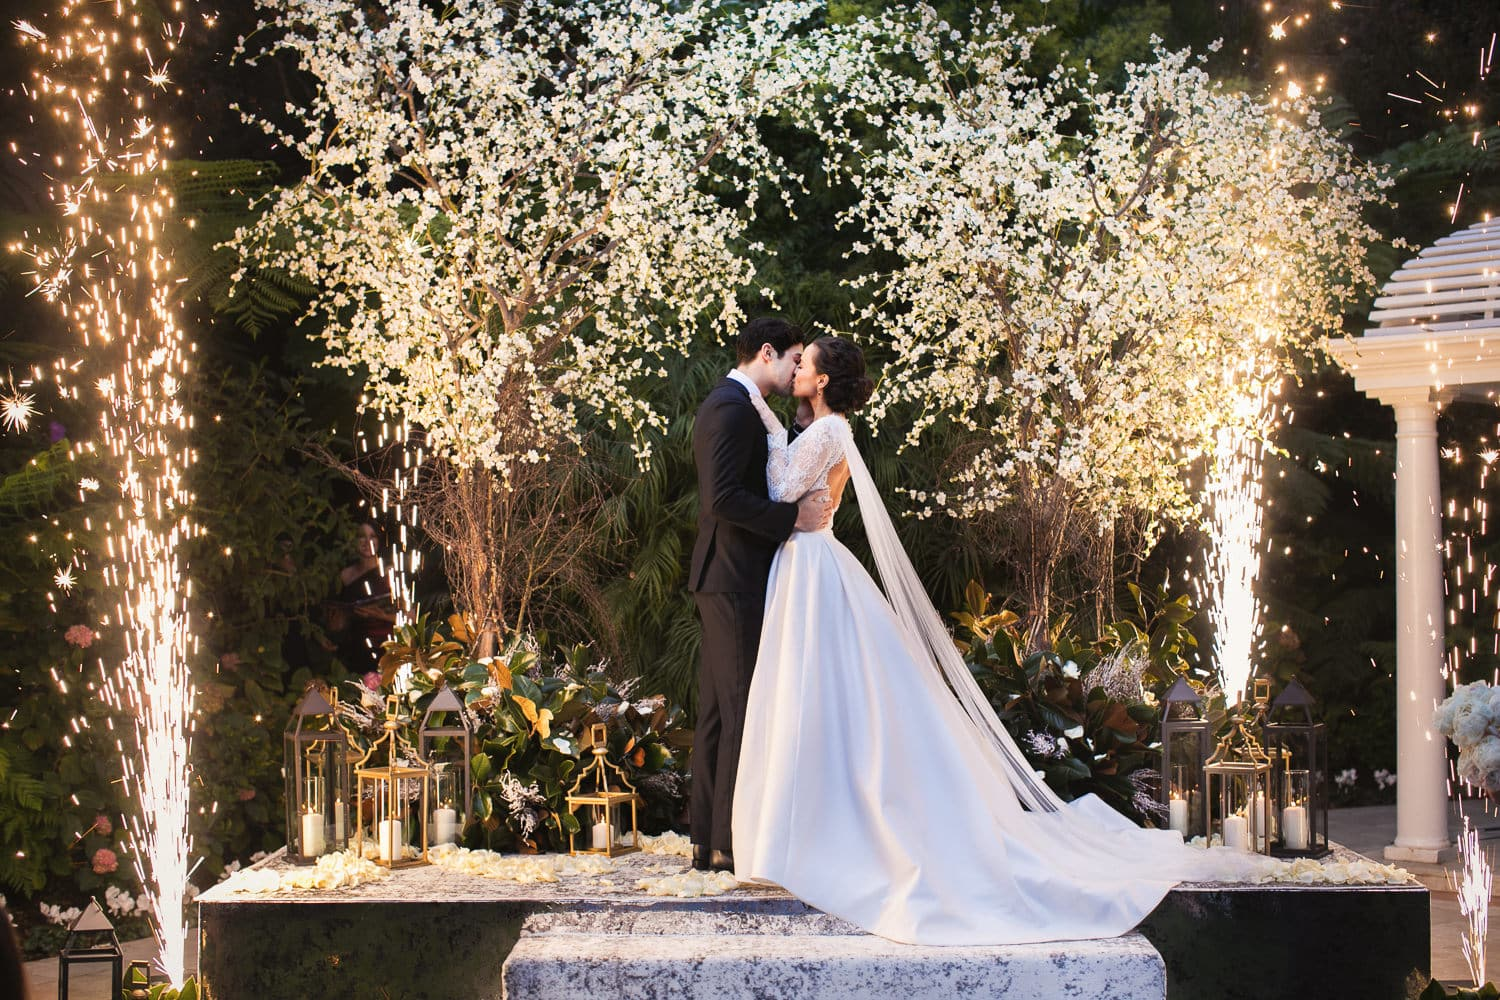 First kiss wedding ceremony with fireworks at the Hotel Bel-Air